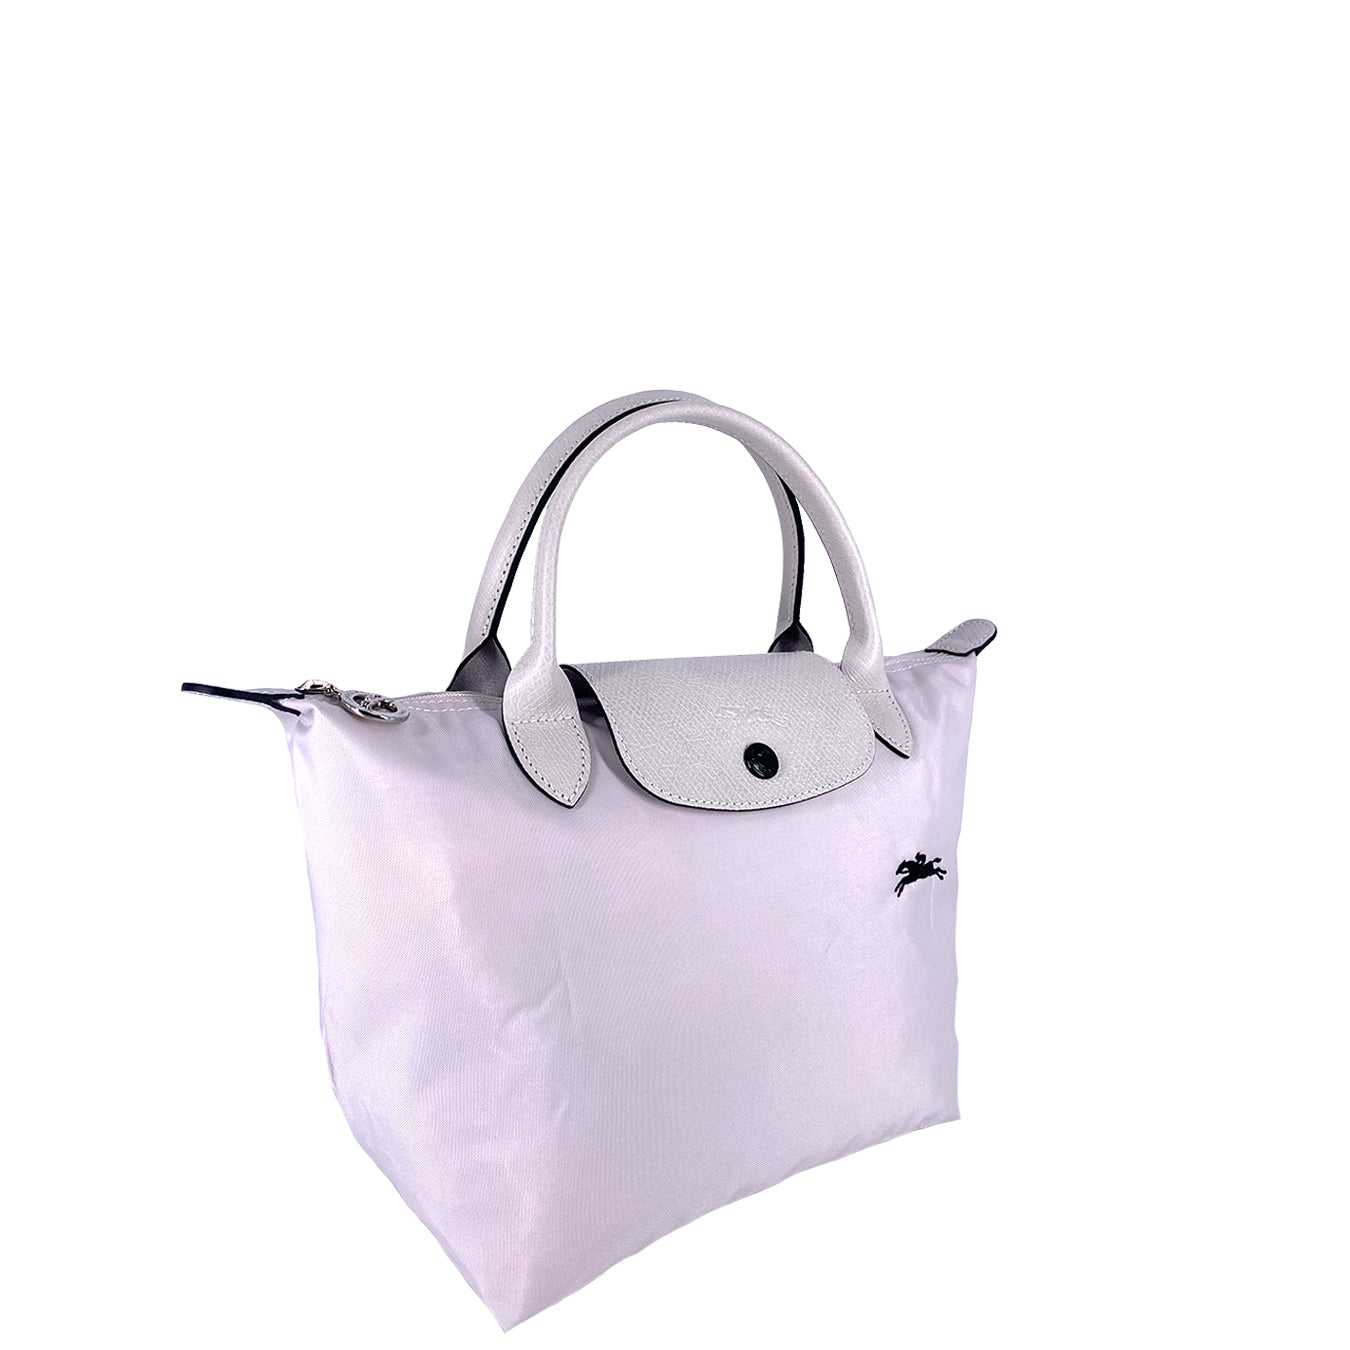 Longchamp Le Pliage Club Small SH in Beige